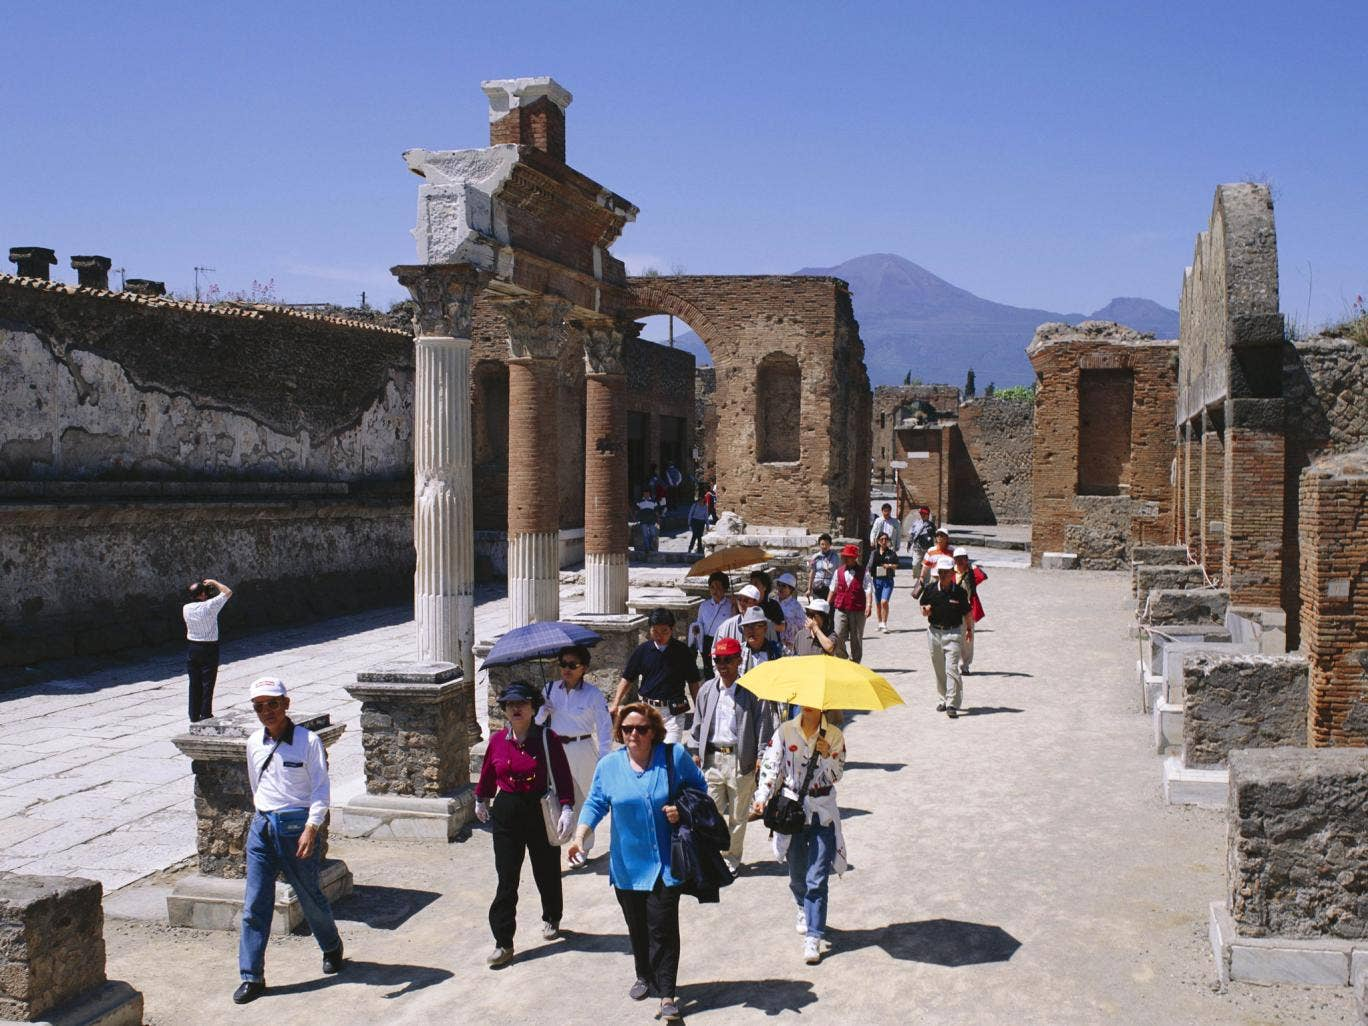 Pompeii has been trampled by millions of tourists